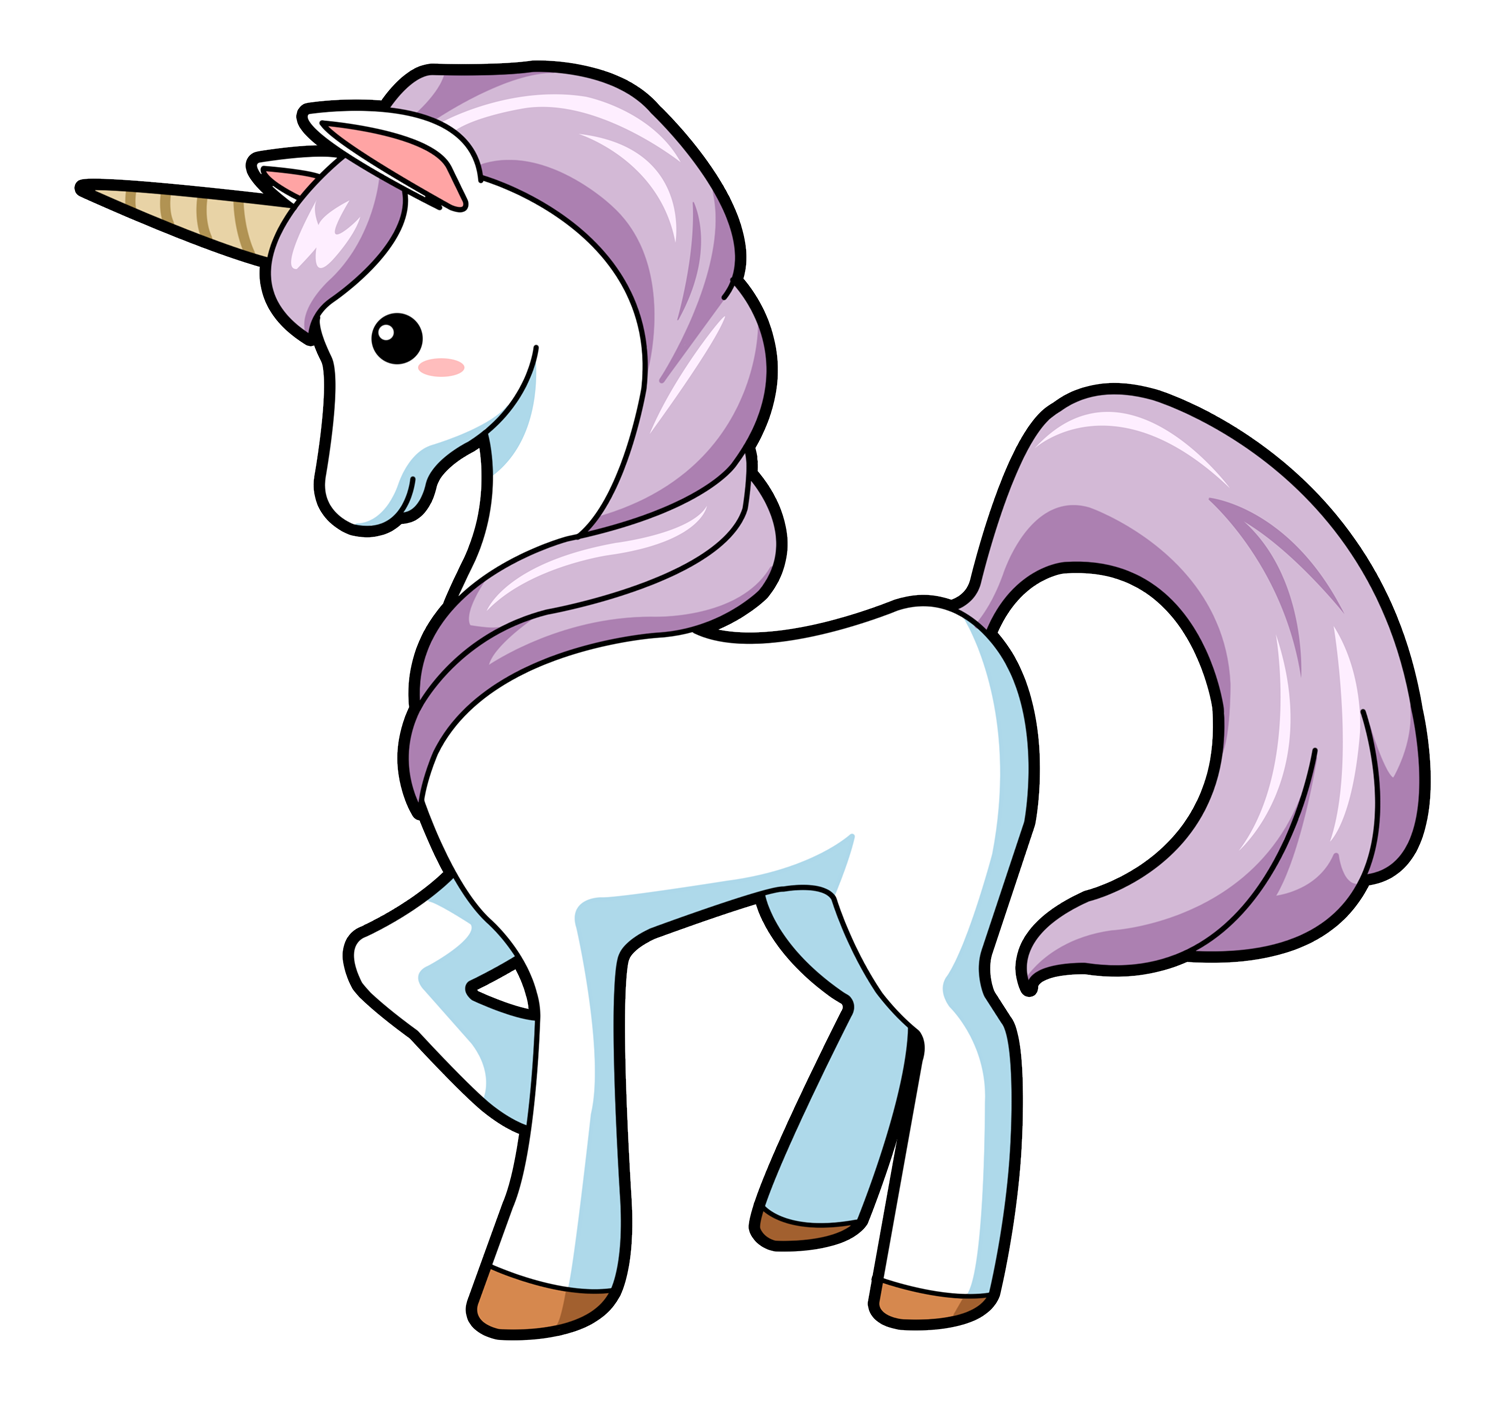 You can use this lovely carto - Unicorn Clip Art